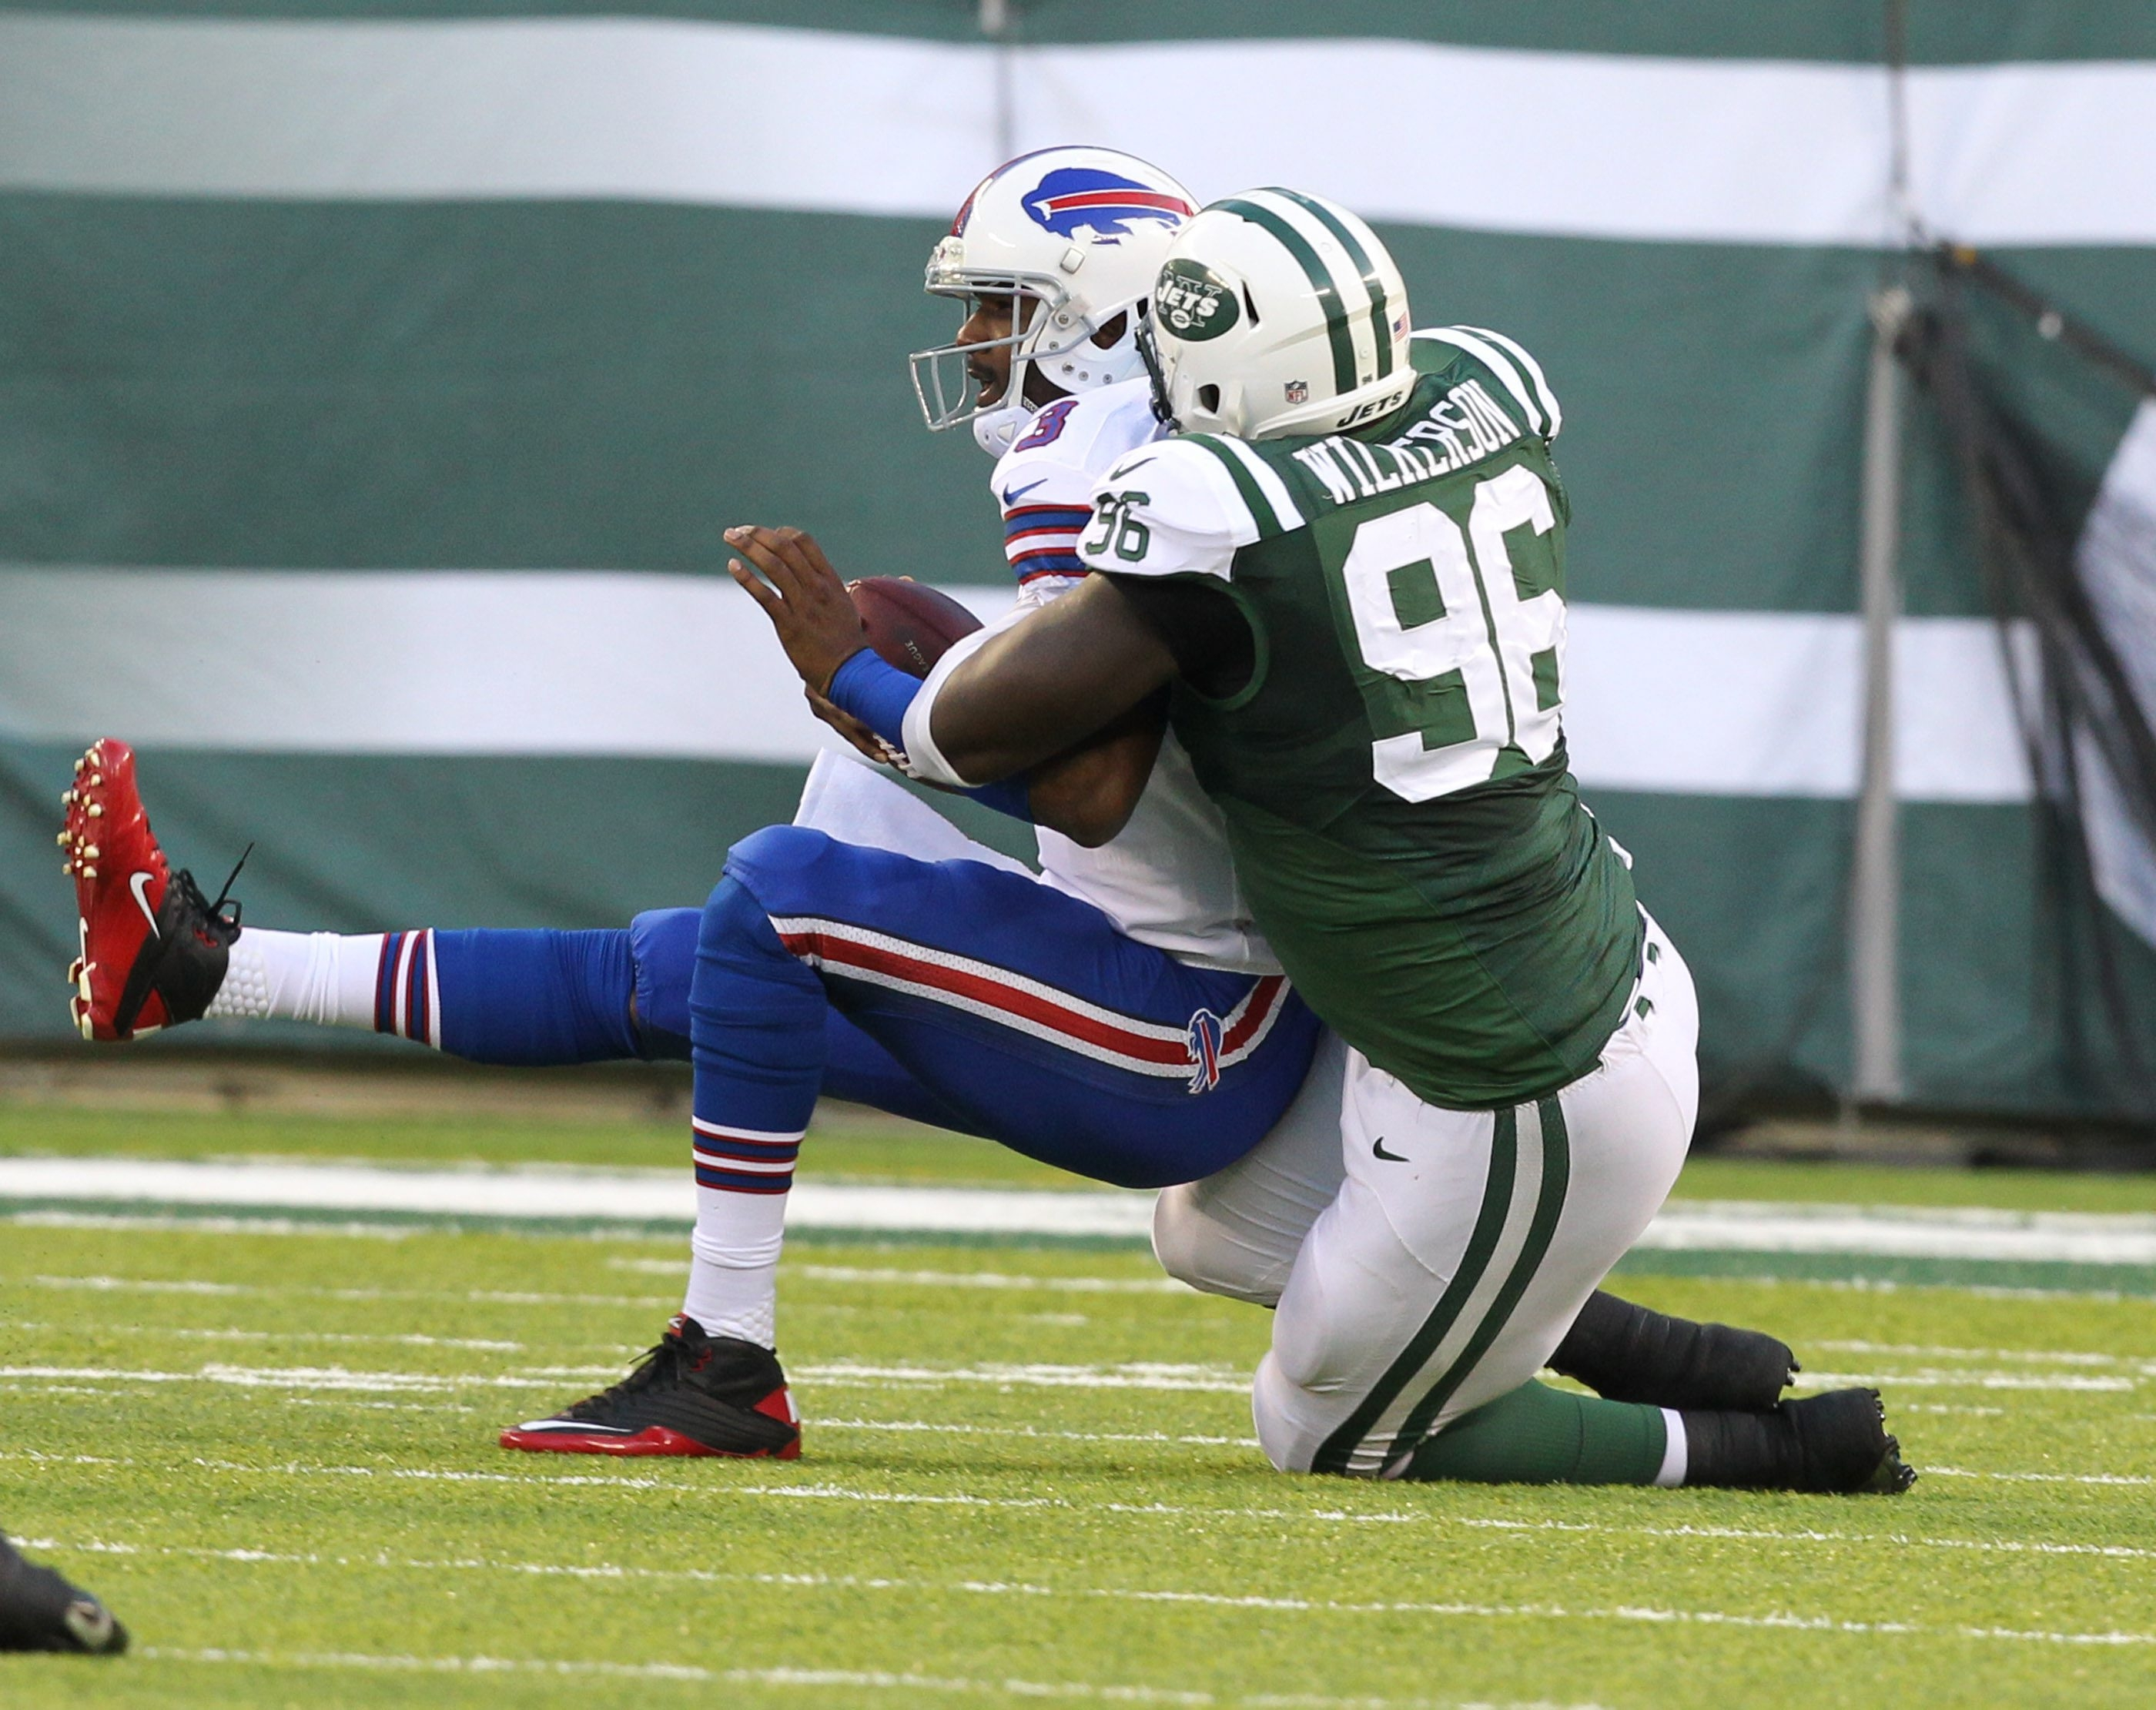 Buffalo Bills quarterback EJ Manuel is sacked by New York Jets defensive end Muhammad Wilkerson (96) in the second quarter.  {James P. McCoy/ Buffalo News}